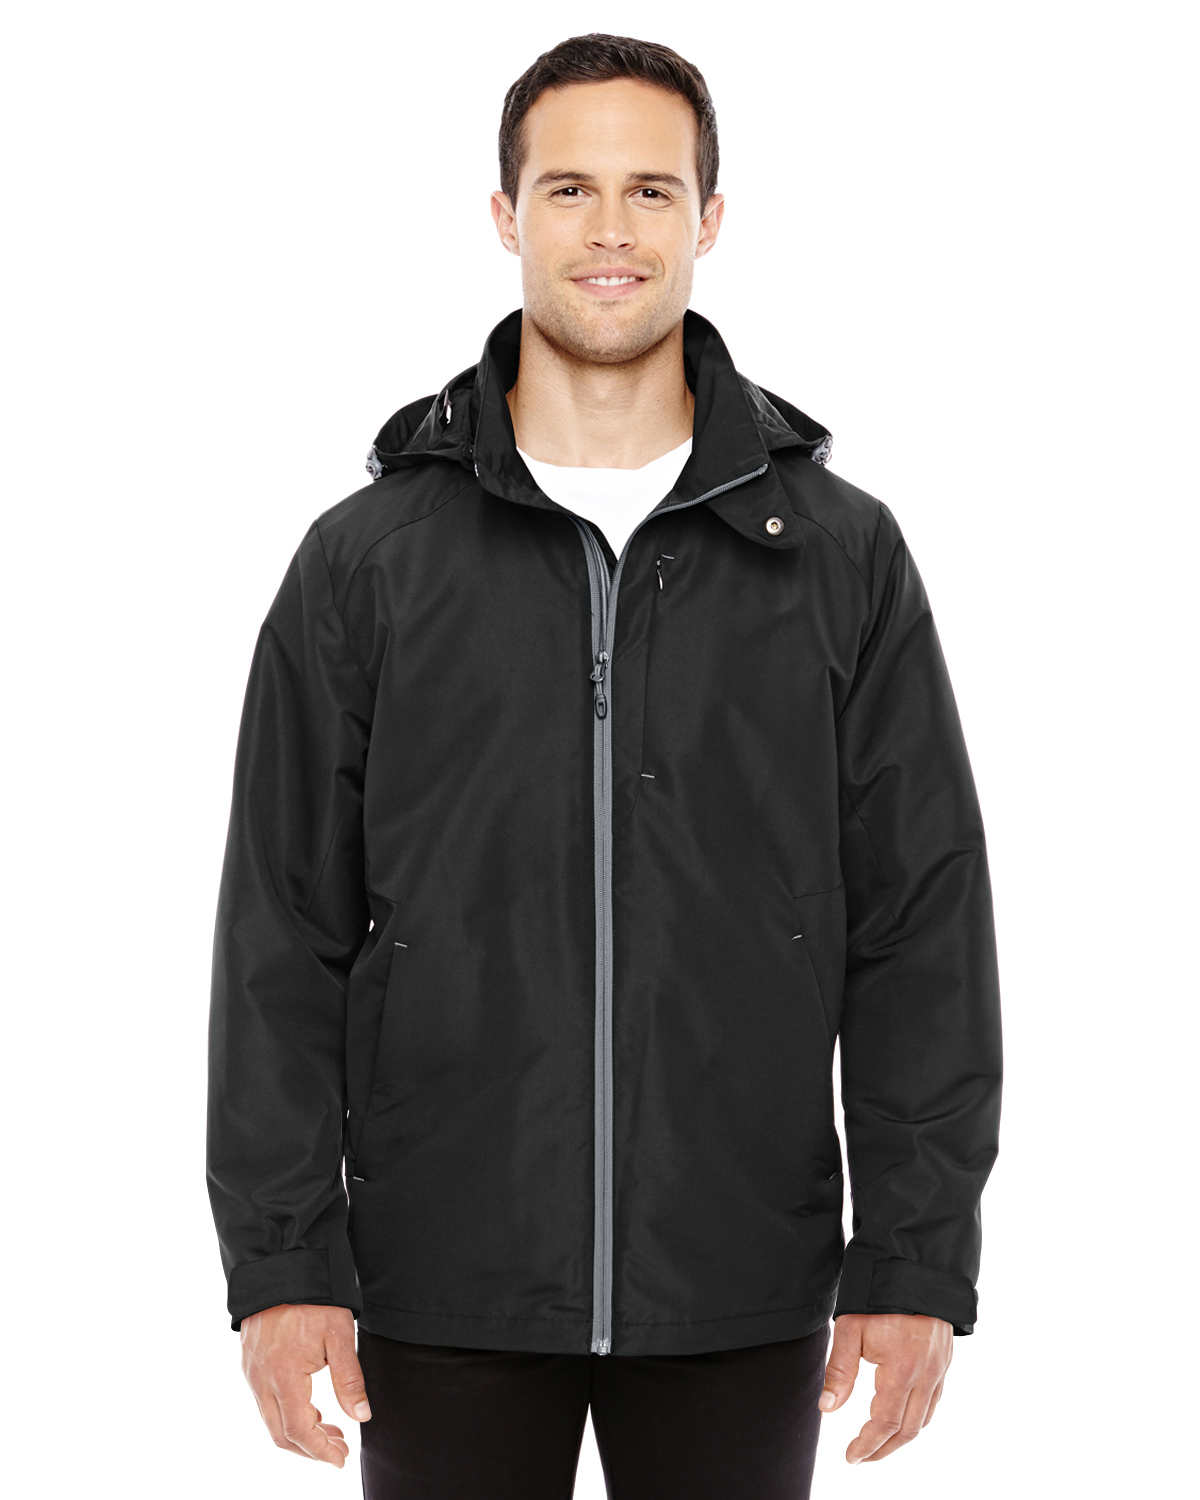 Ash City - North End 88226 - Men's Insight Interactive Shell Jacket